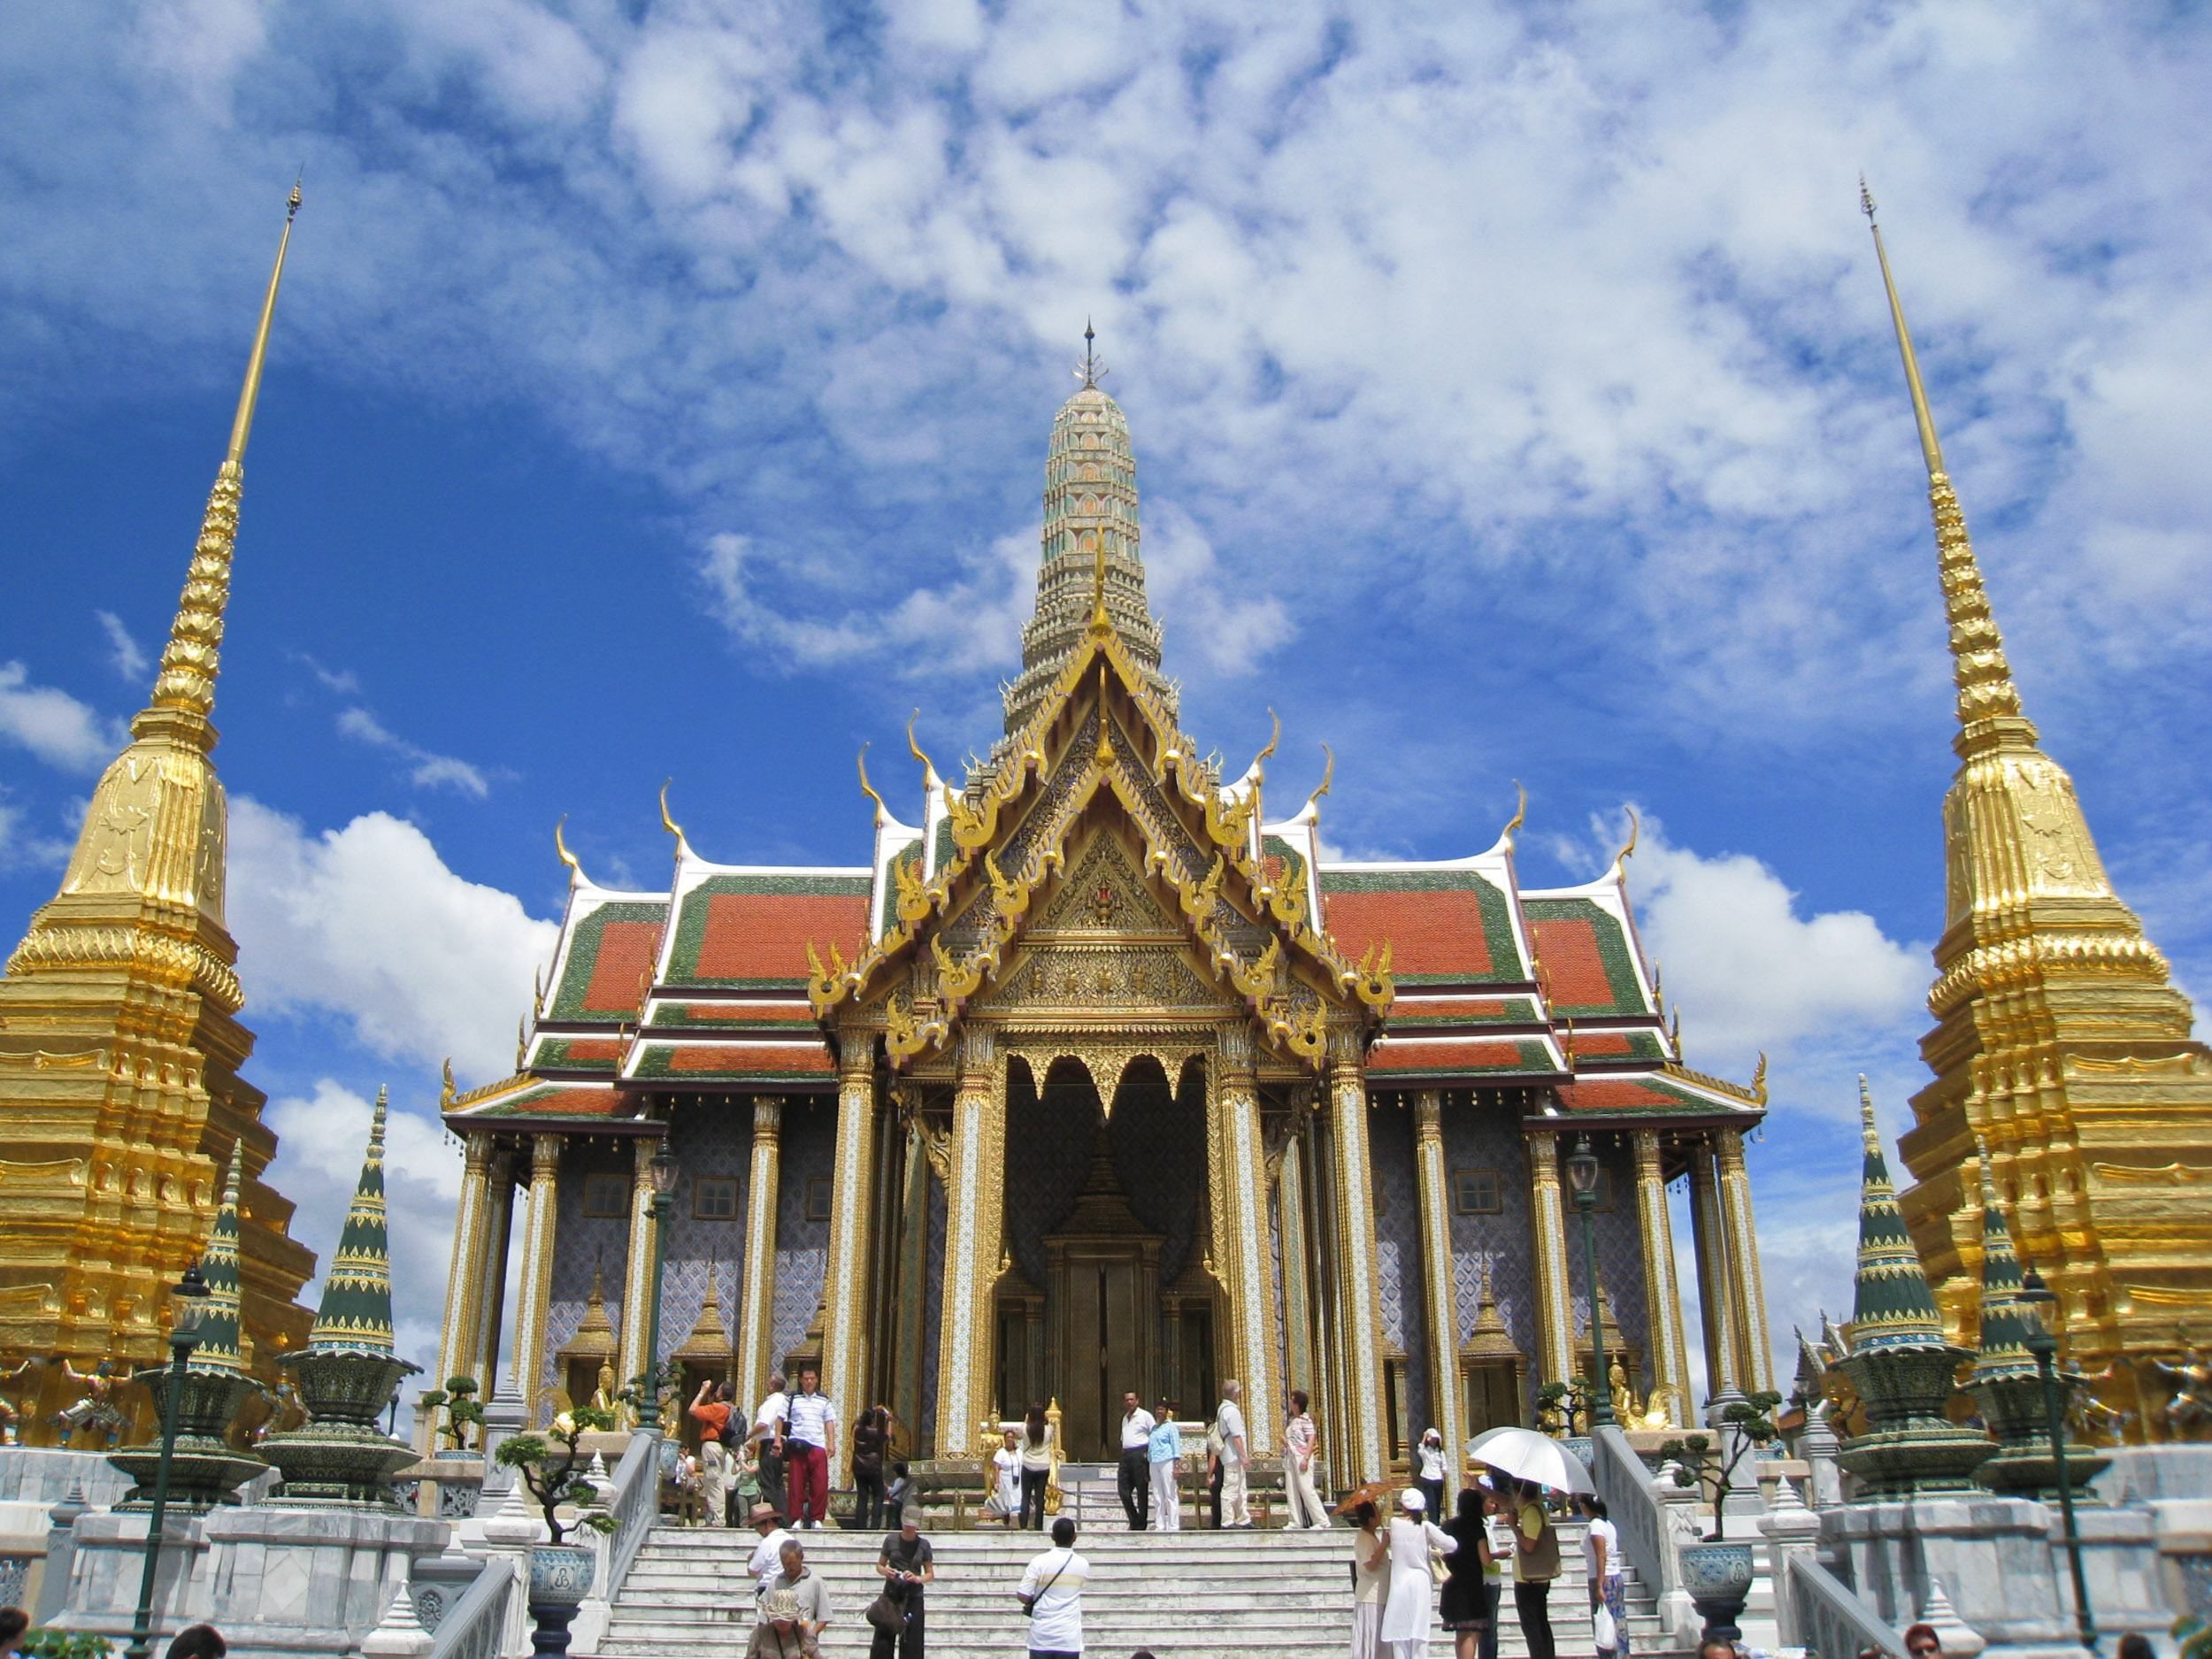 Visiting The Grand Palace is one of many recommended things to do in our Bangkok city guide